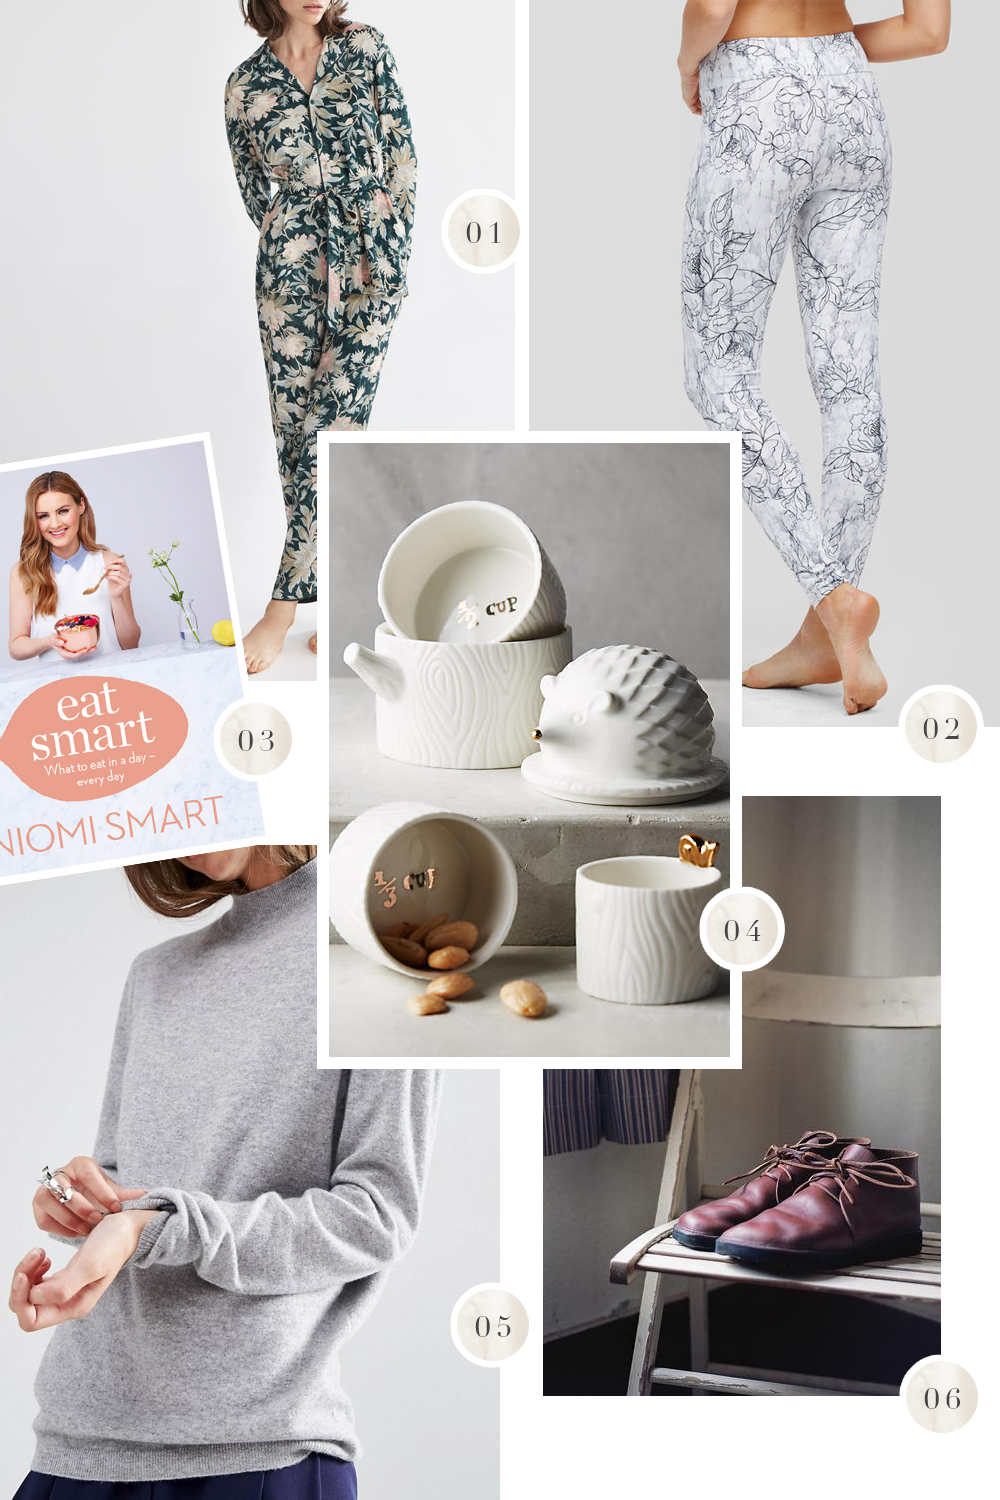 My Autumn Wishlist ft. ASOS Cachmere Sweater, Aurora Leather Shoes, Oysho Pyjamas & more!